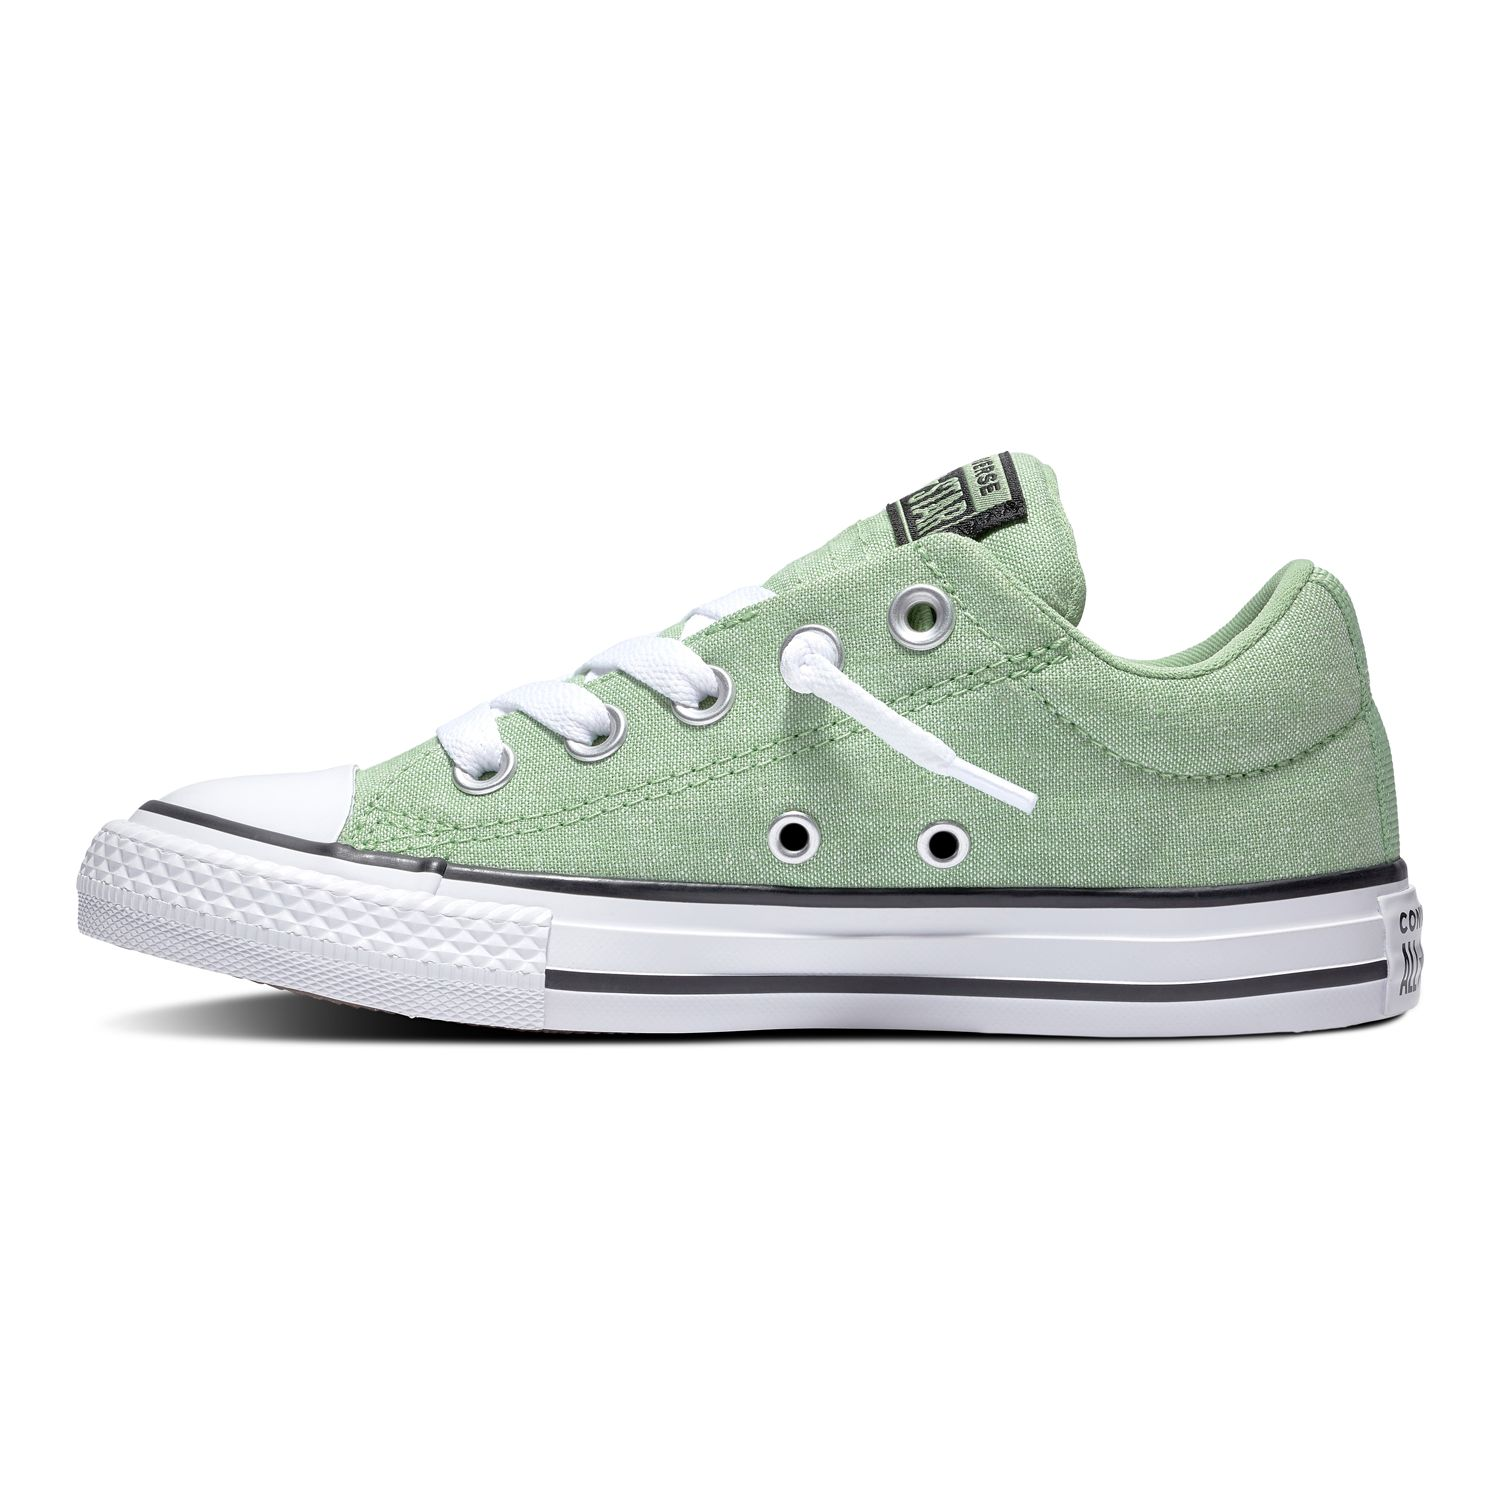 6fba3d3d8e98 Boys  Converse Shoes